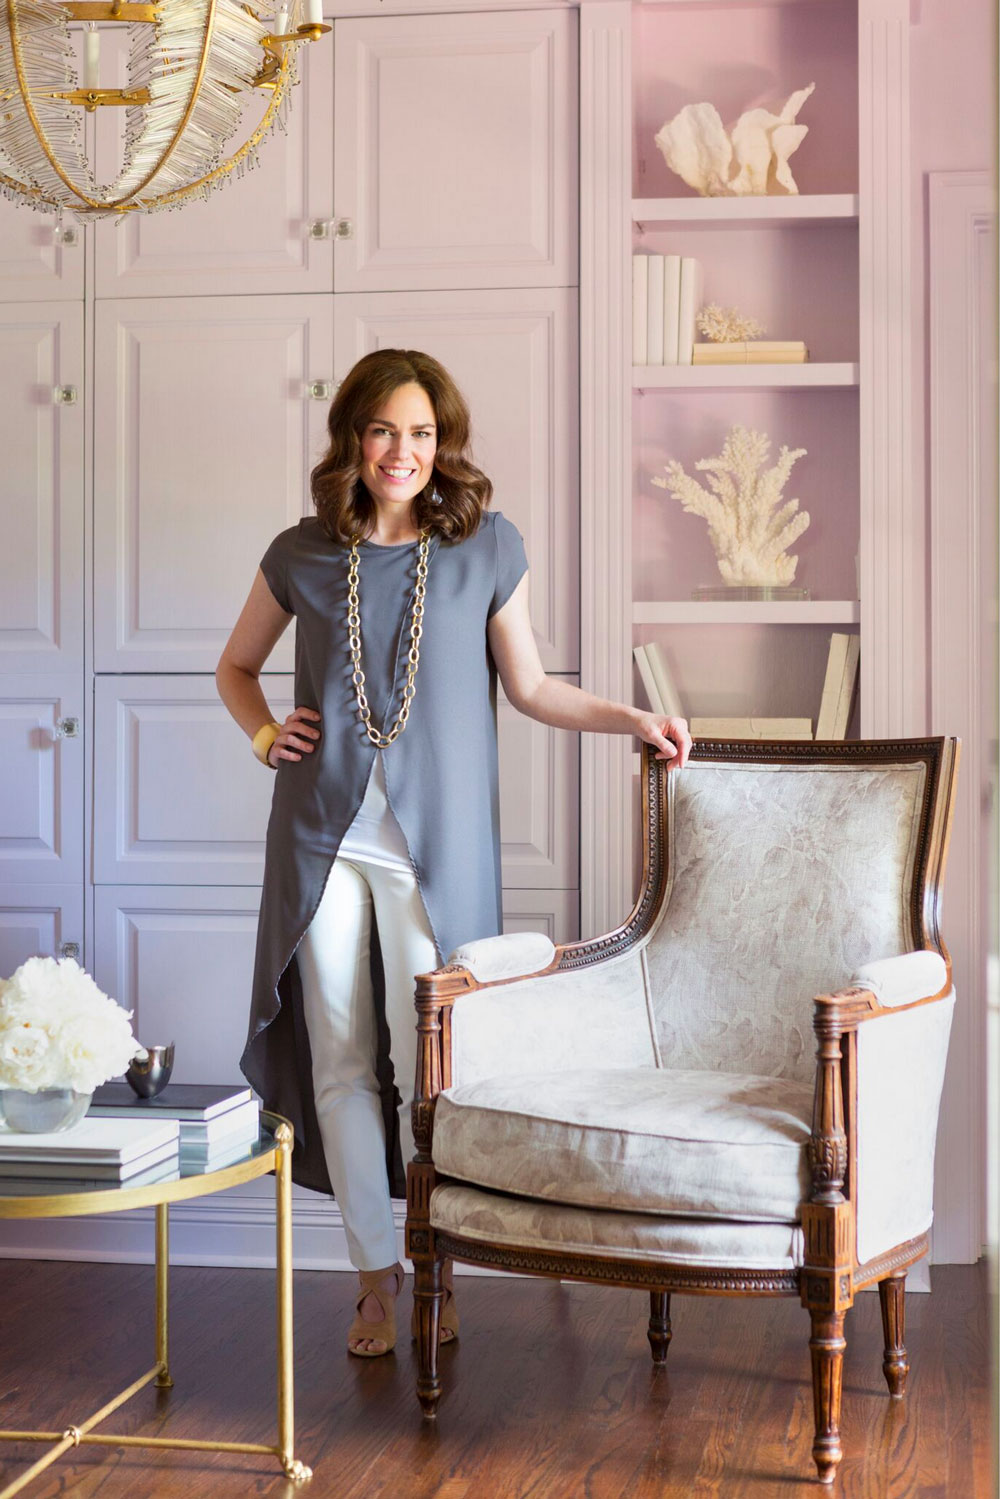 Awesome Molly Ray Young Interior Design Little Rock Arkansas